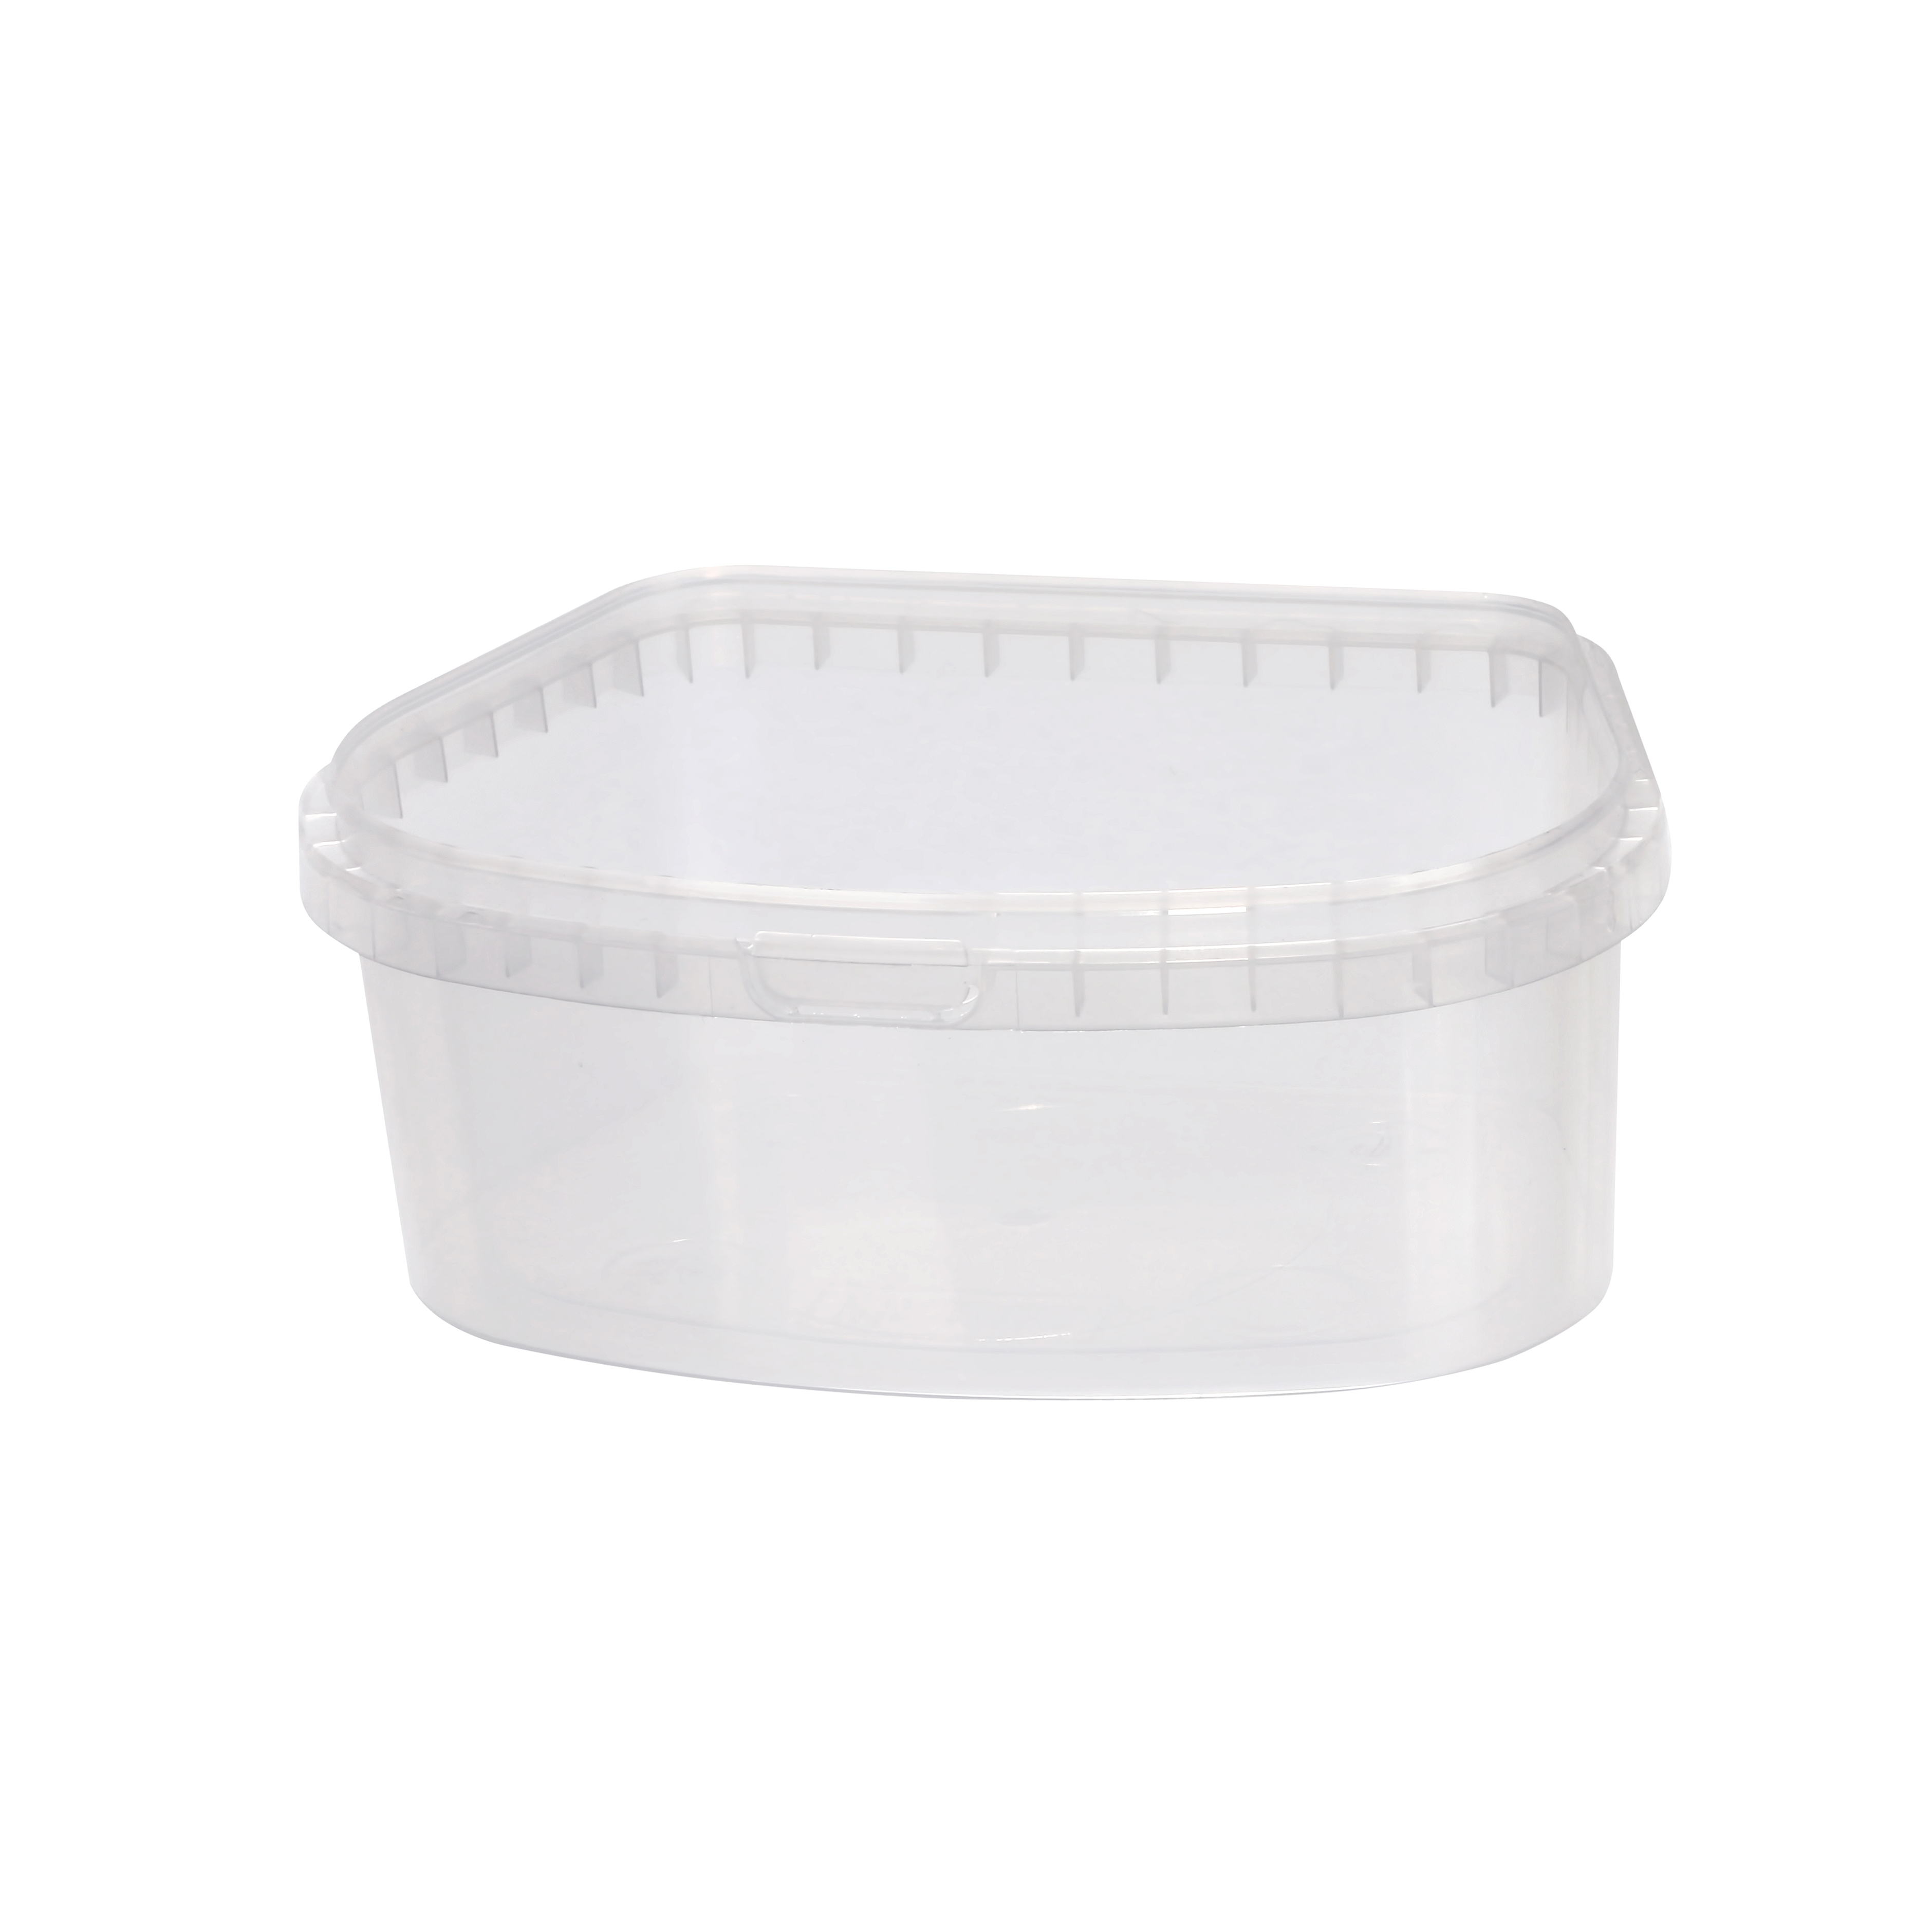 PP hermetic containers created by Plastco keep products fresh and saved from accidental opening